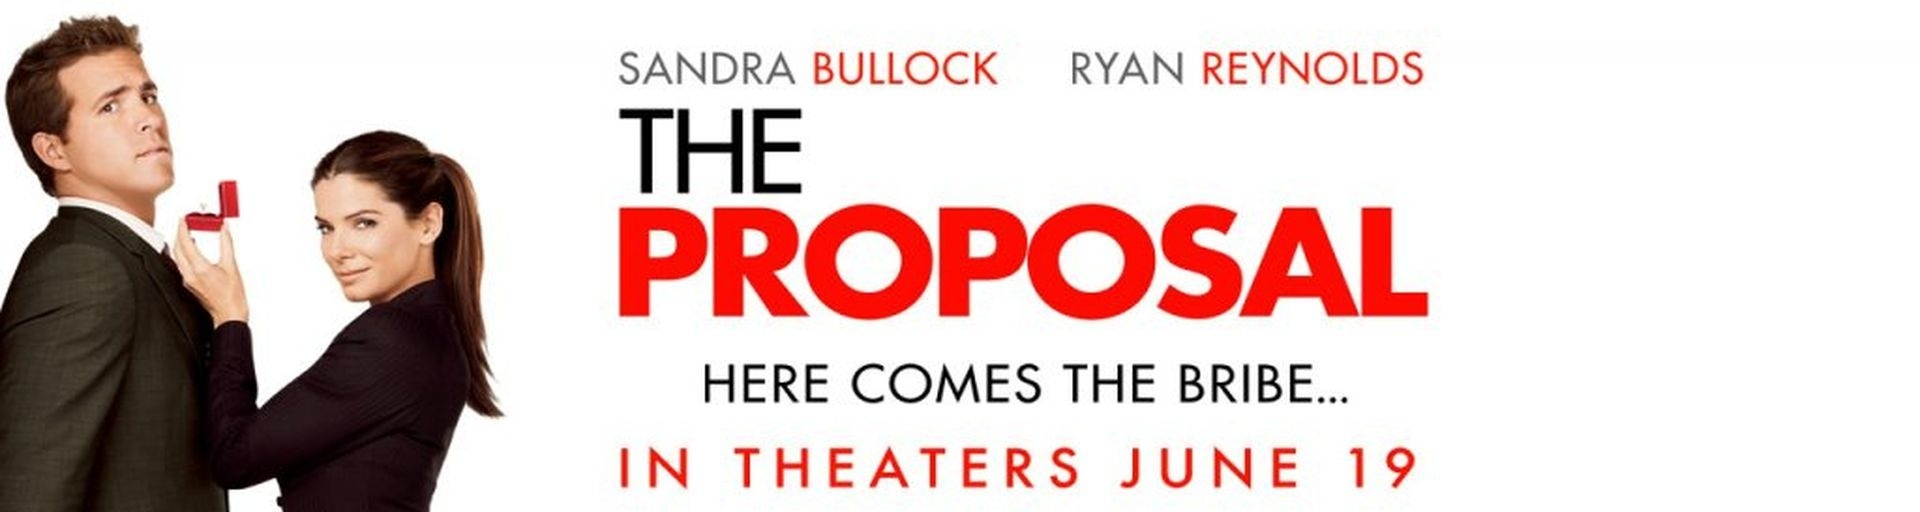 DVD Recension The Proposal G+